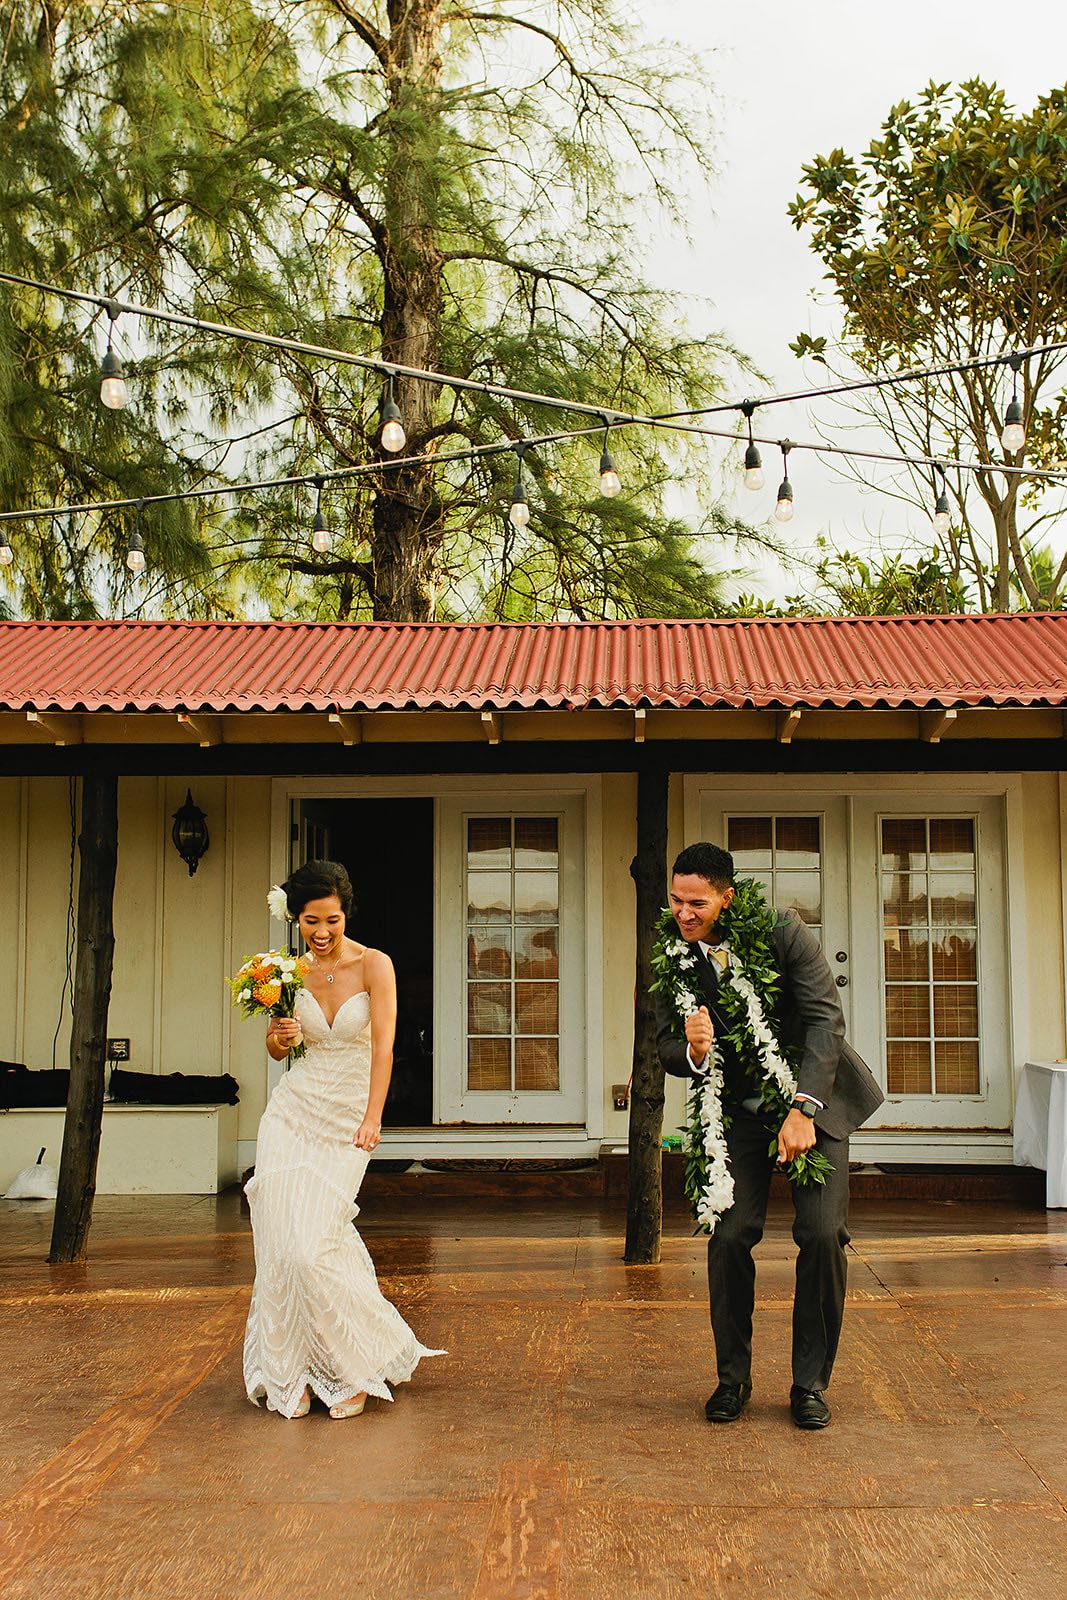 Hawaii Polo Club Wedding - Reception_52 (downsized).jpg